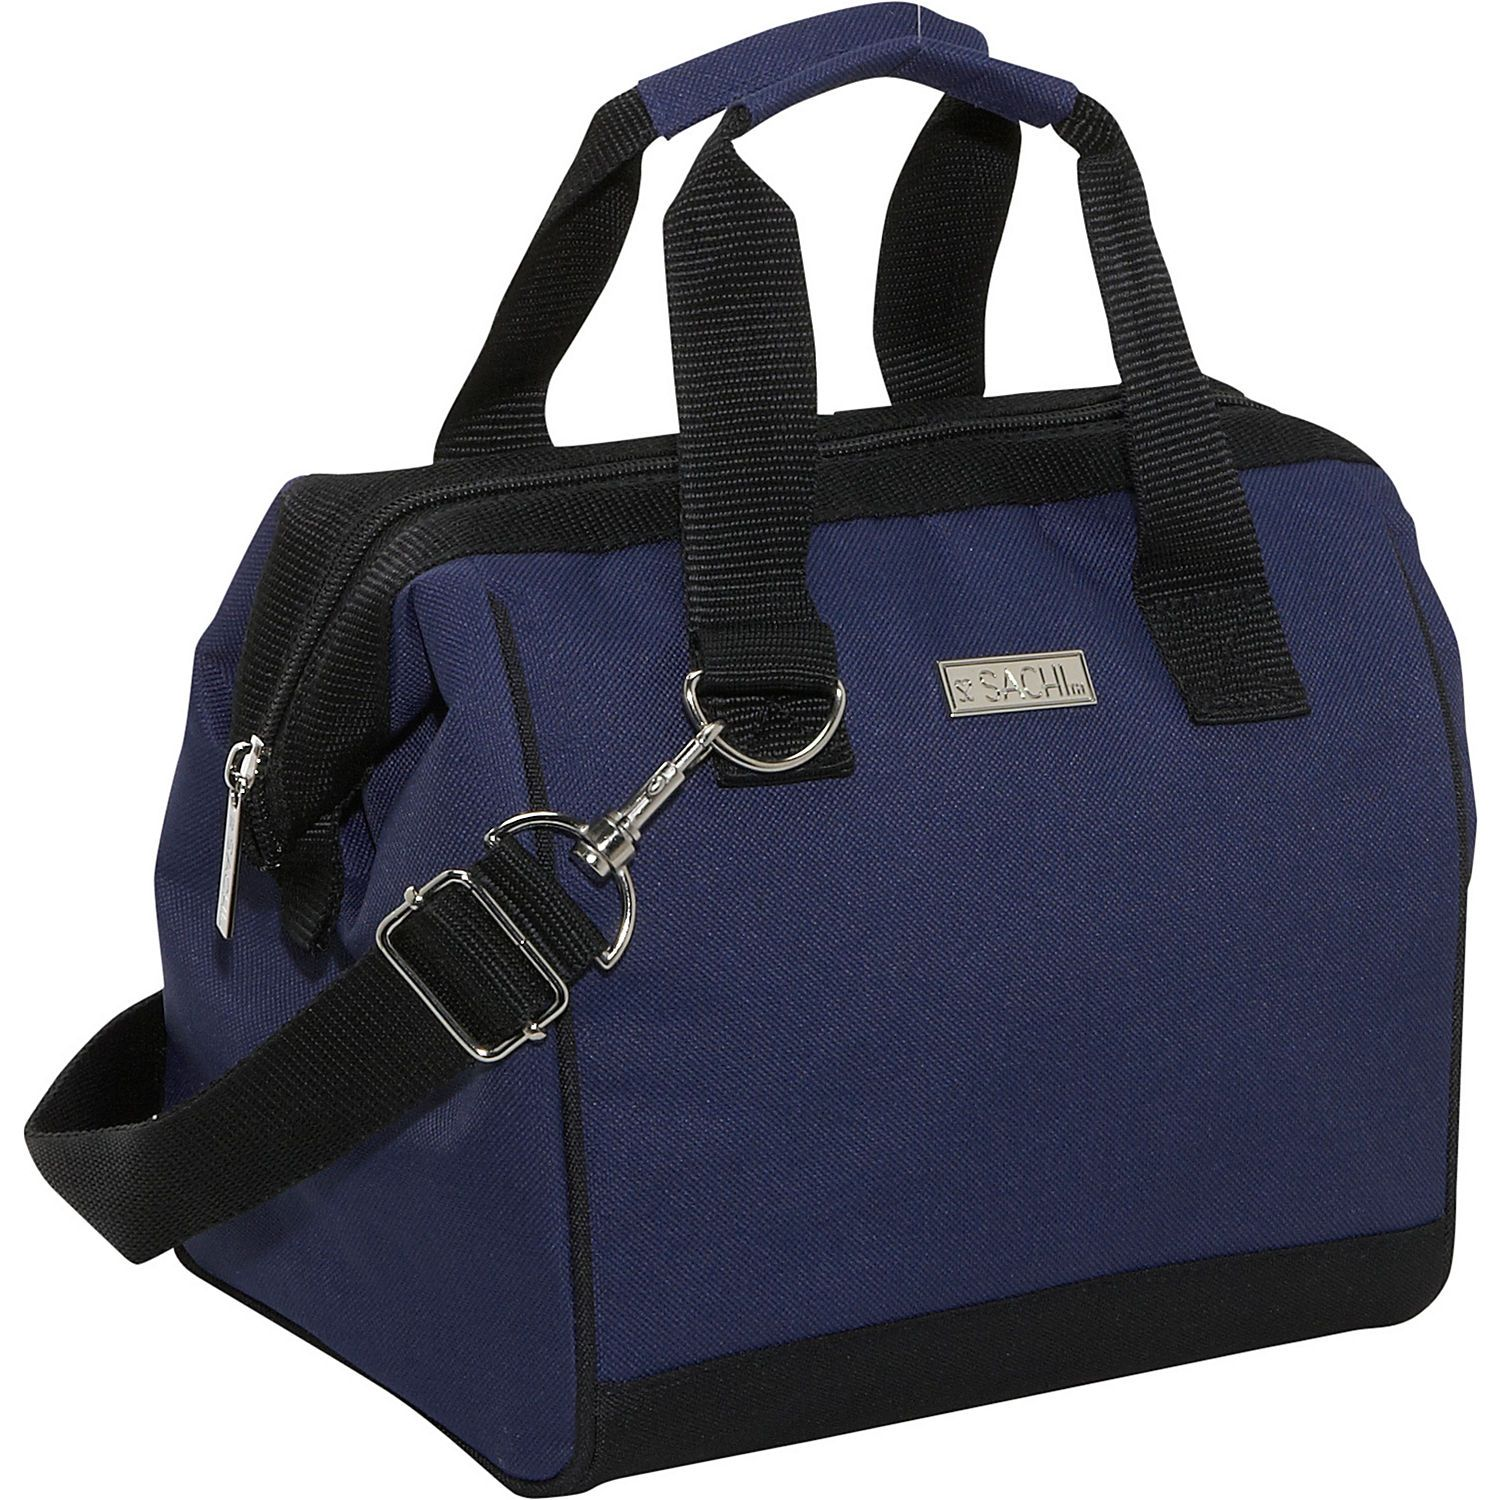 Sachi Insulated Lunch Bags Style 34 Bag - Fashion